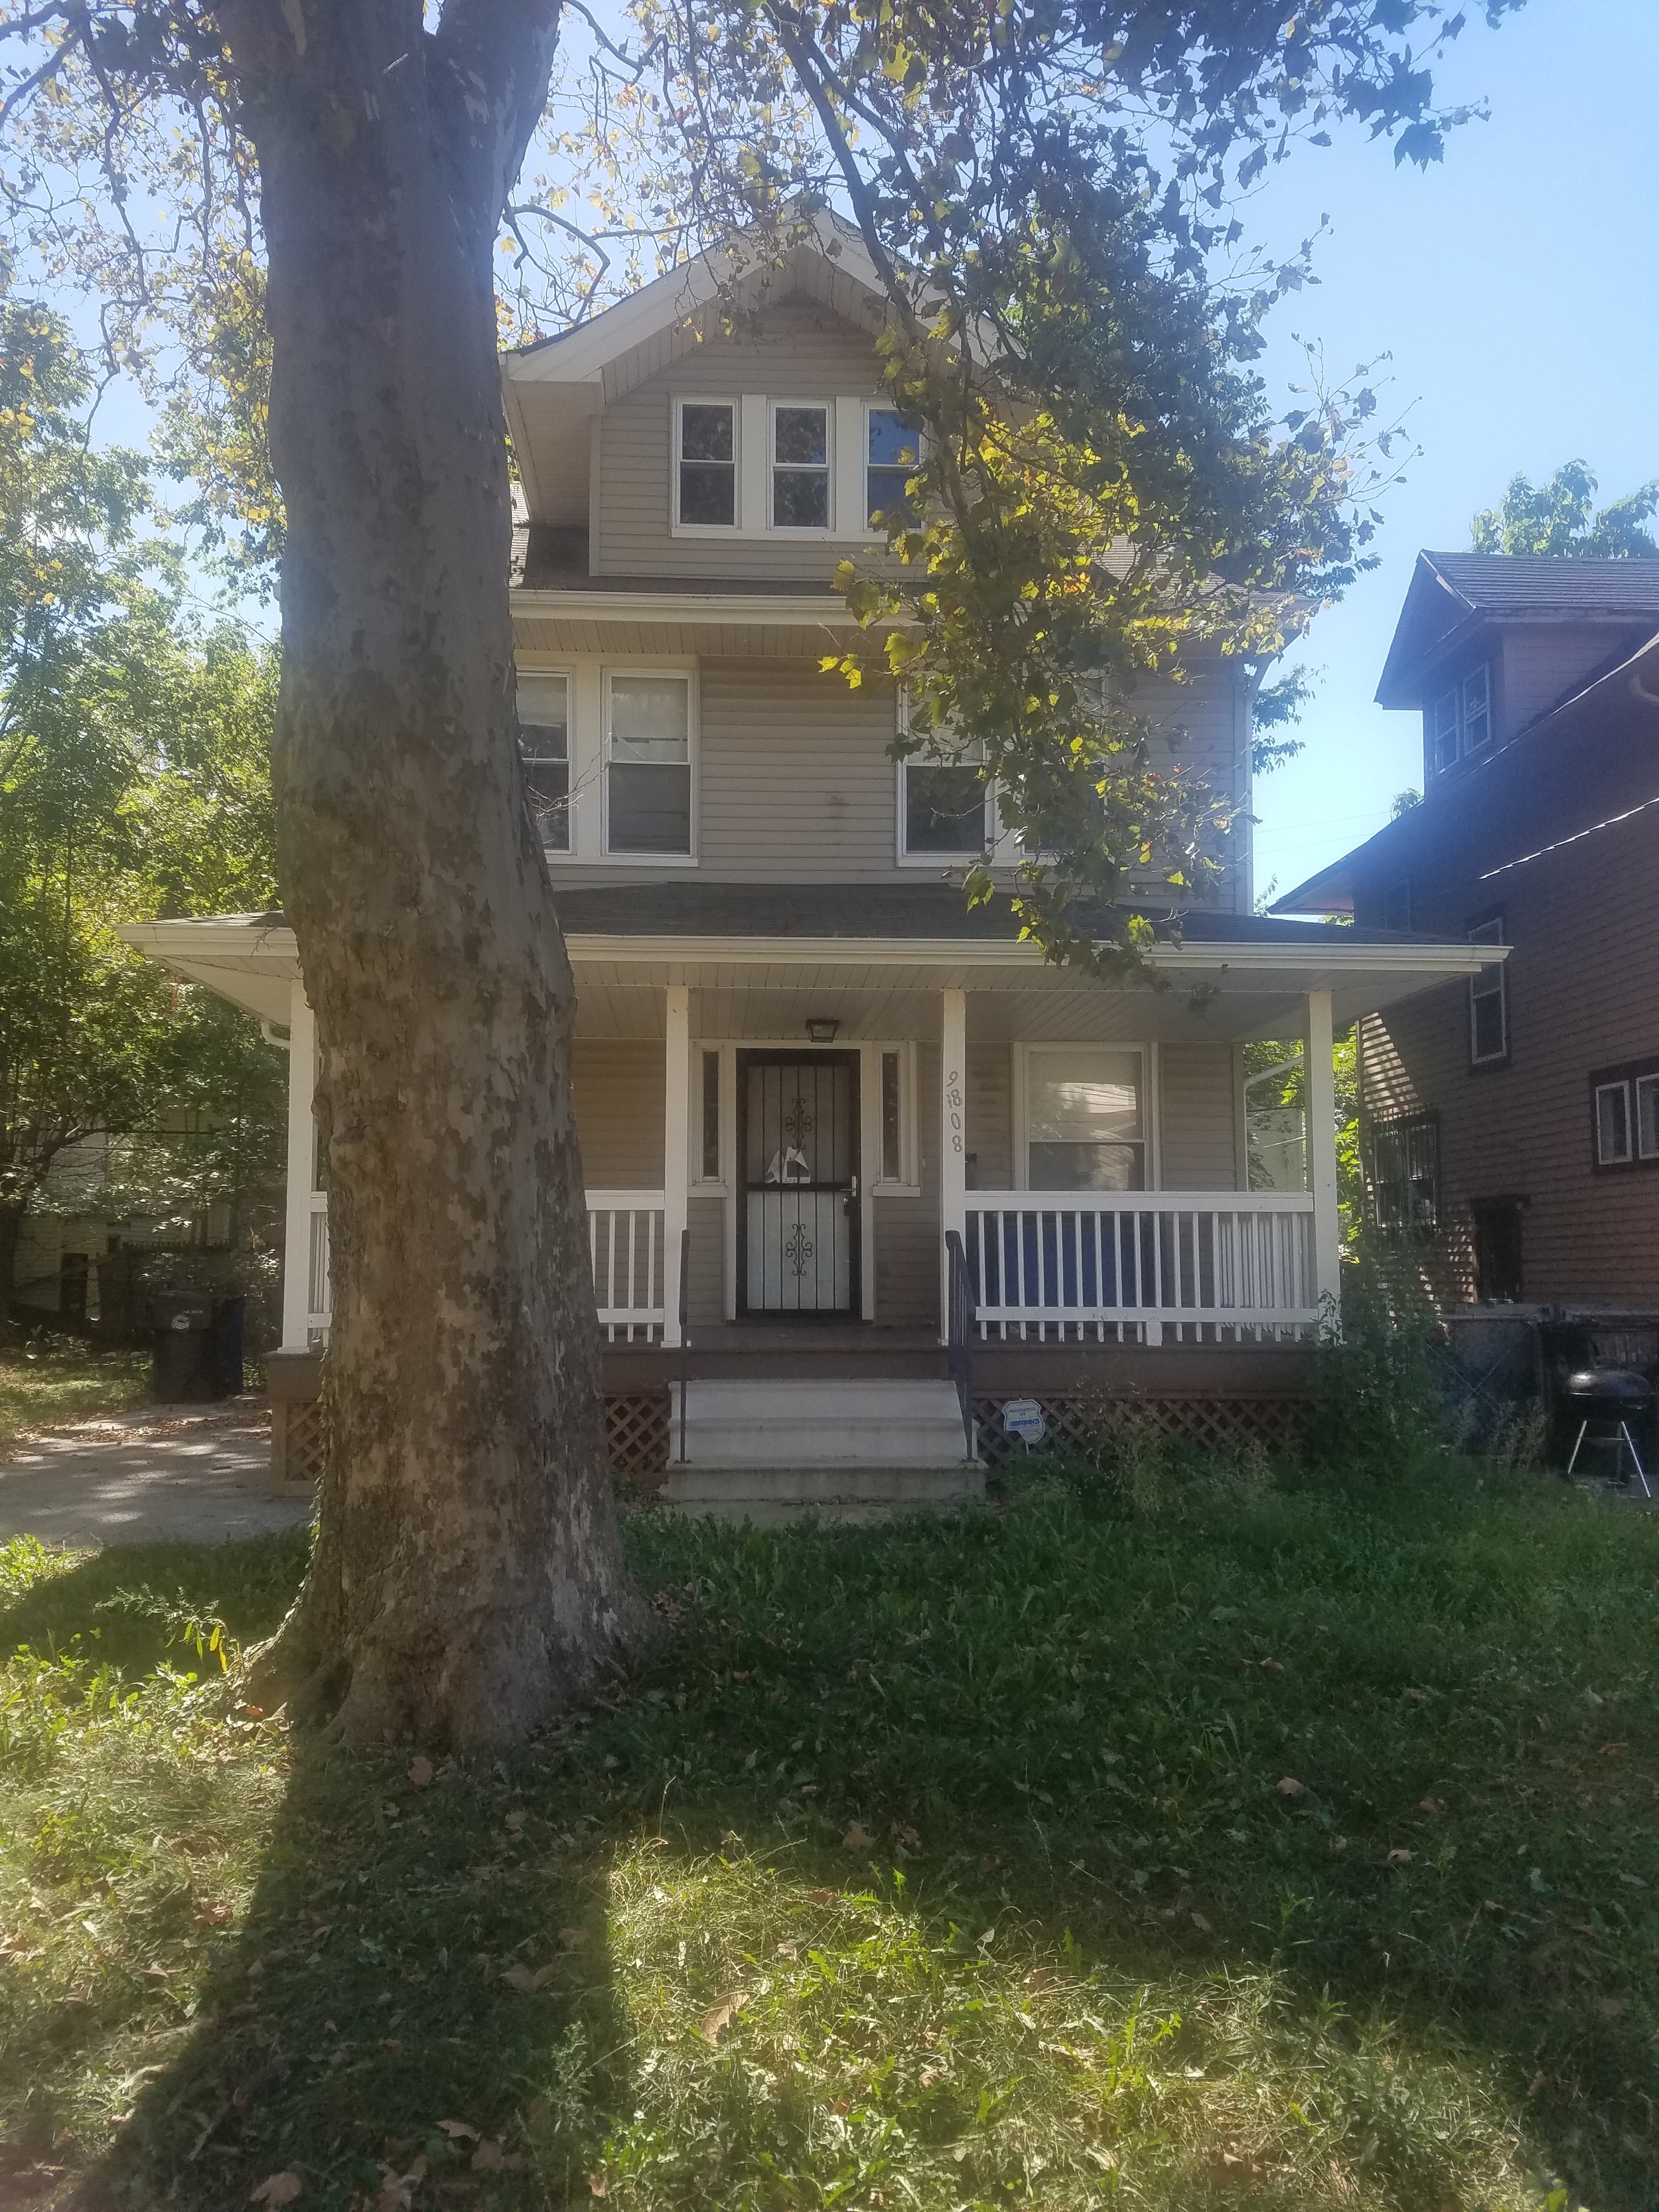 9808 Parmelee Ave., Cleveland | 3 bed 1 bath | 1,344 Sq. Ft. | $16,000